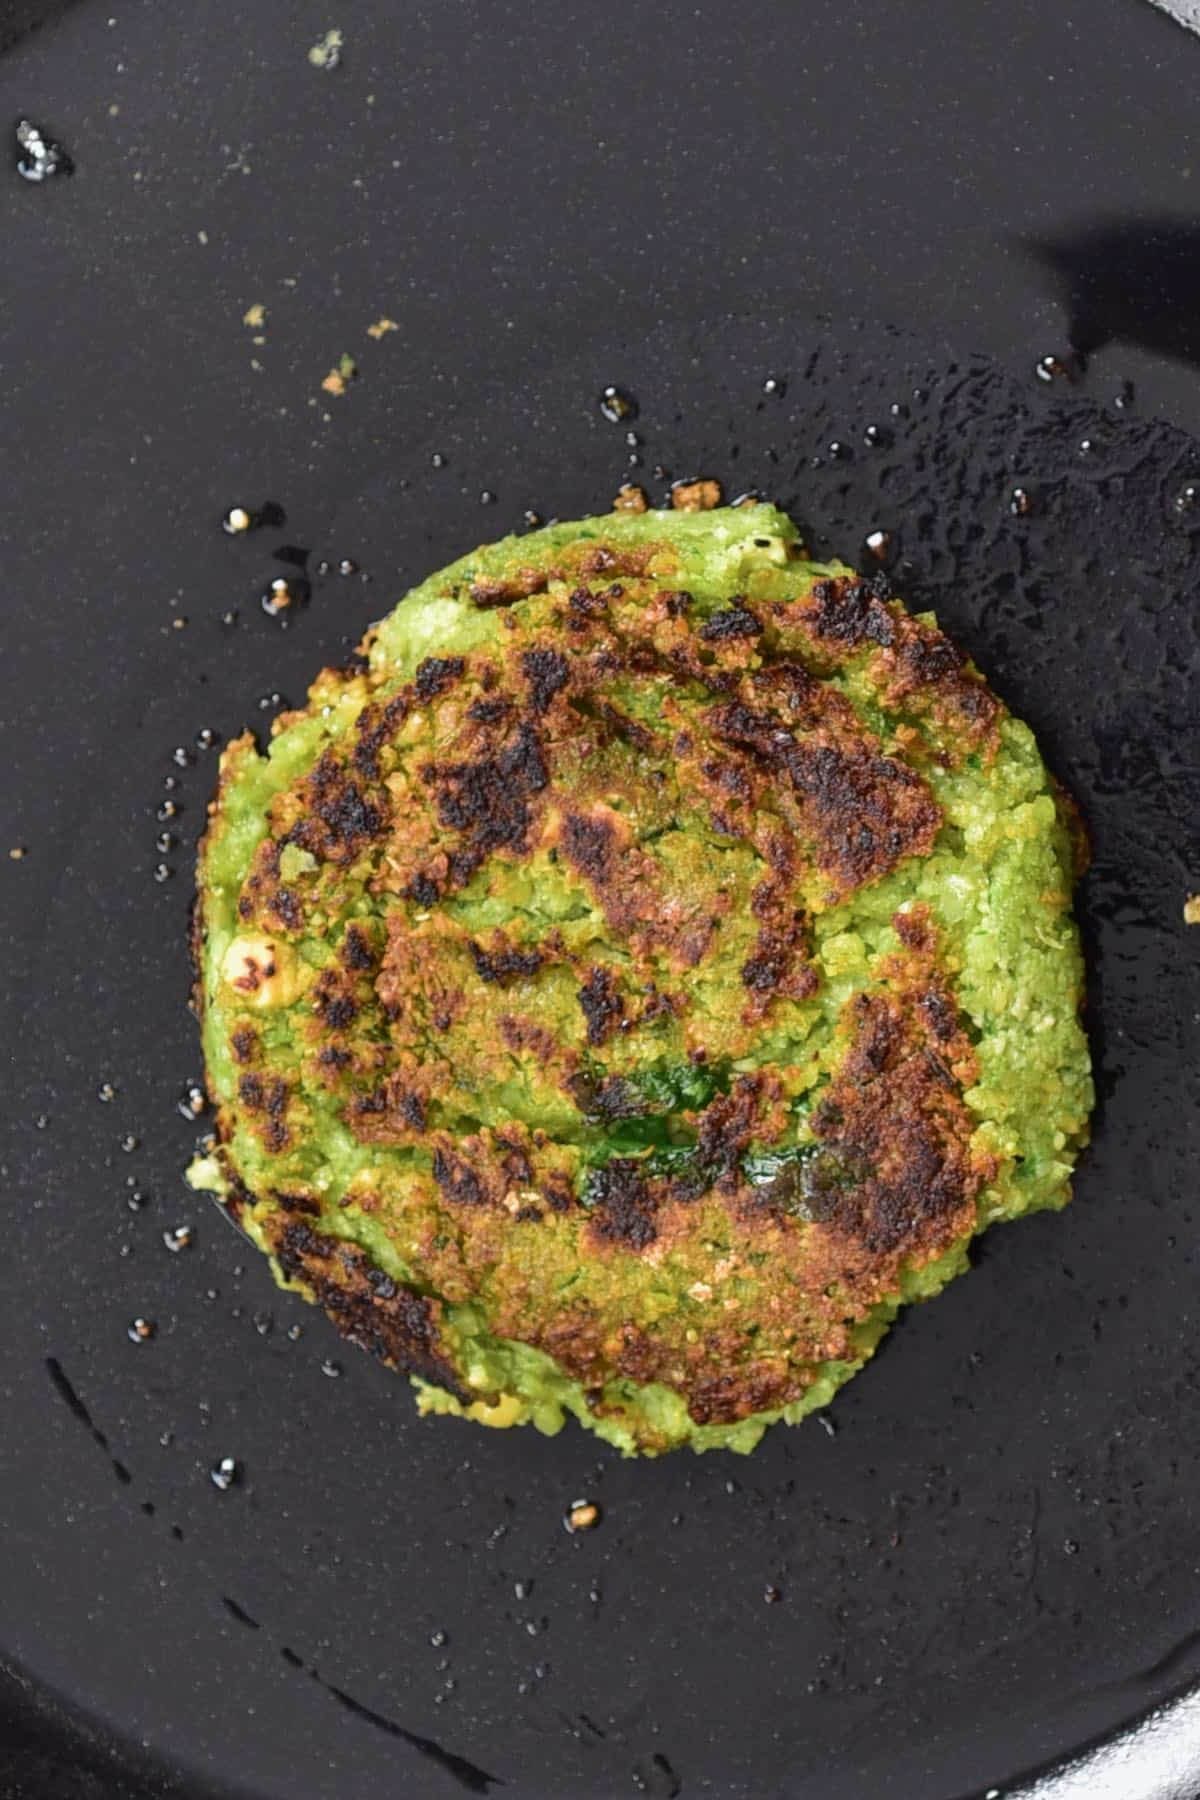 A falafel patty laying on a dark flat surface